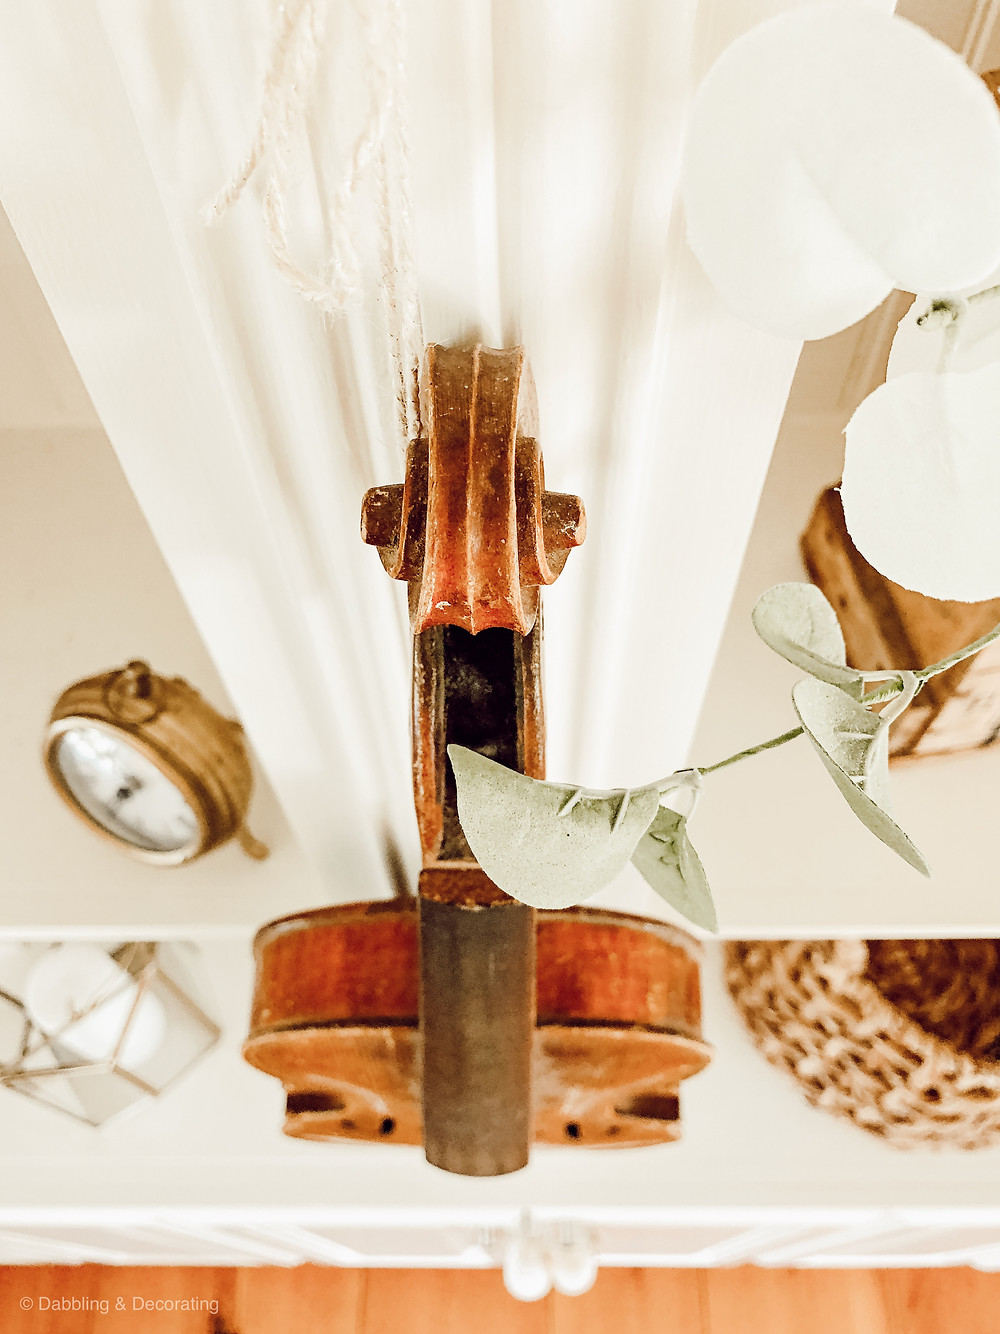 Decorating with Vintage Finds, Vintage Wooden Violin